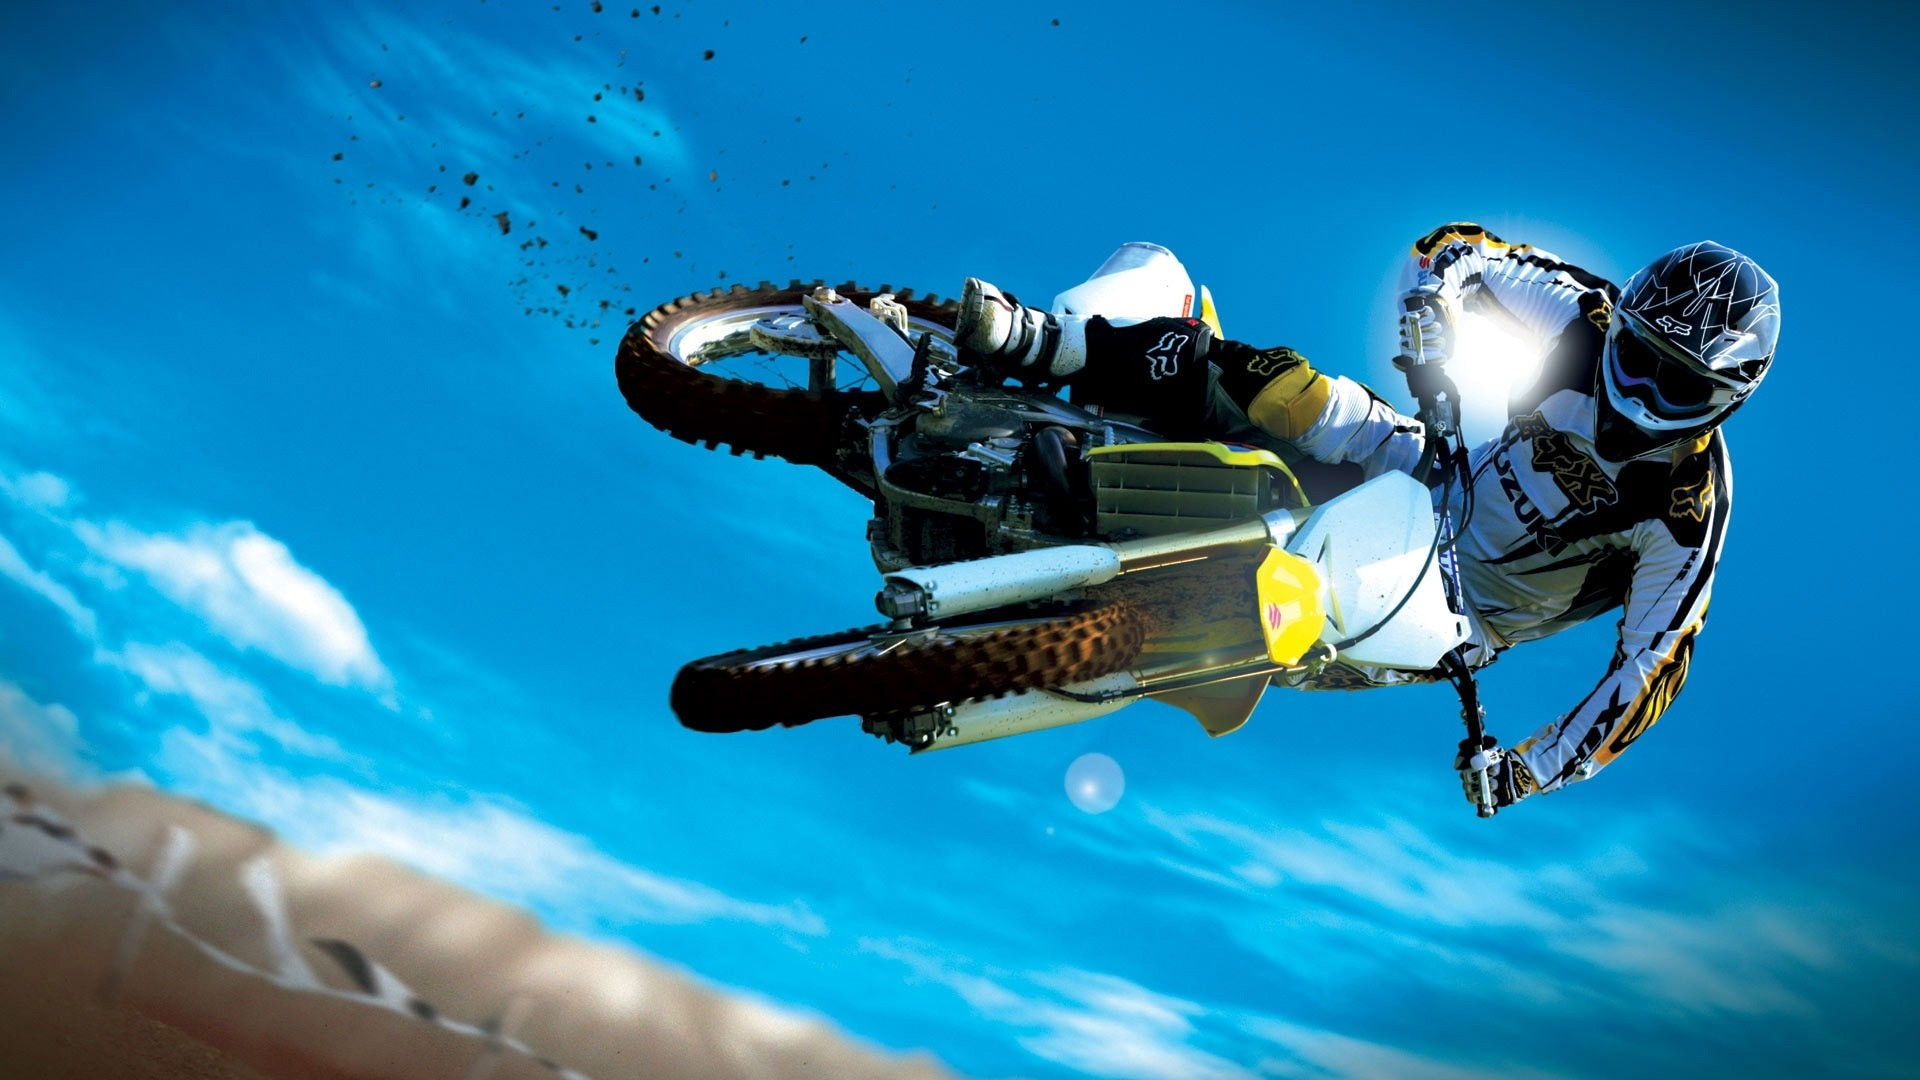 Moto freestyle, photo athlete in the air - great wallpapers for your desktop